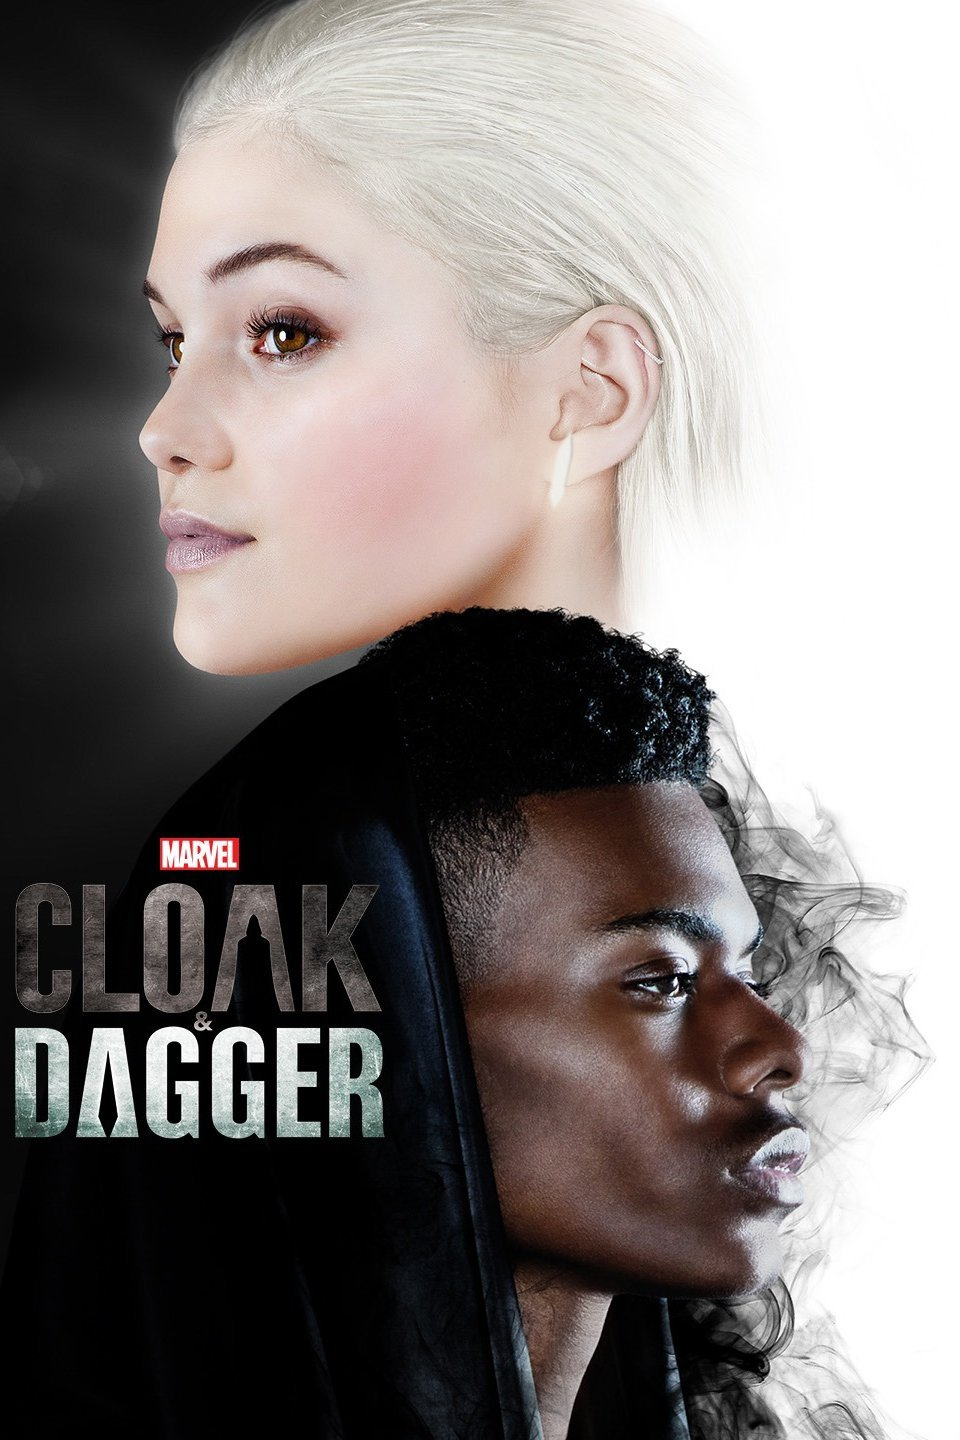 Cloak & Dagger Season 1 Download HDTV (Episode 10 Added)